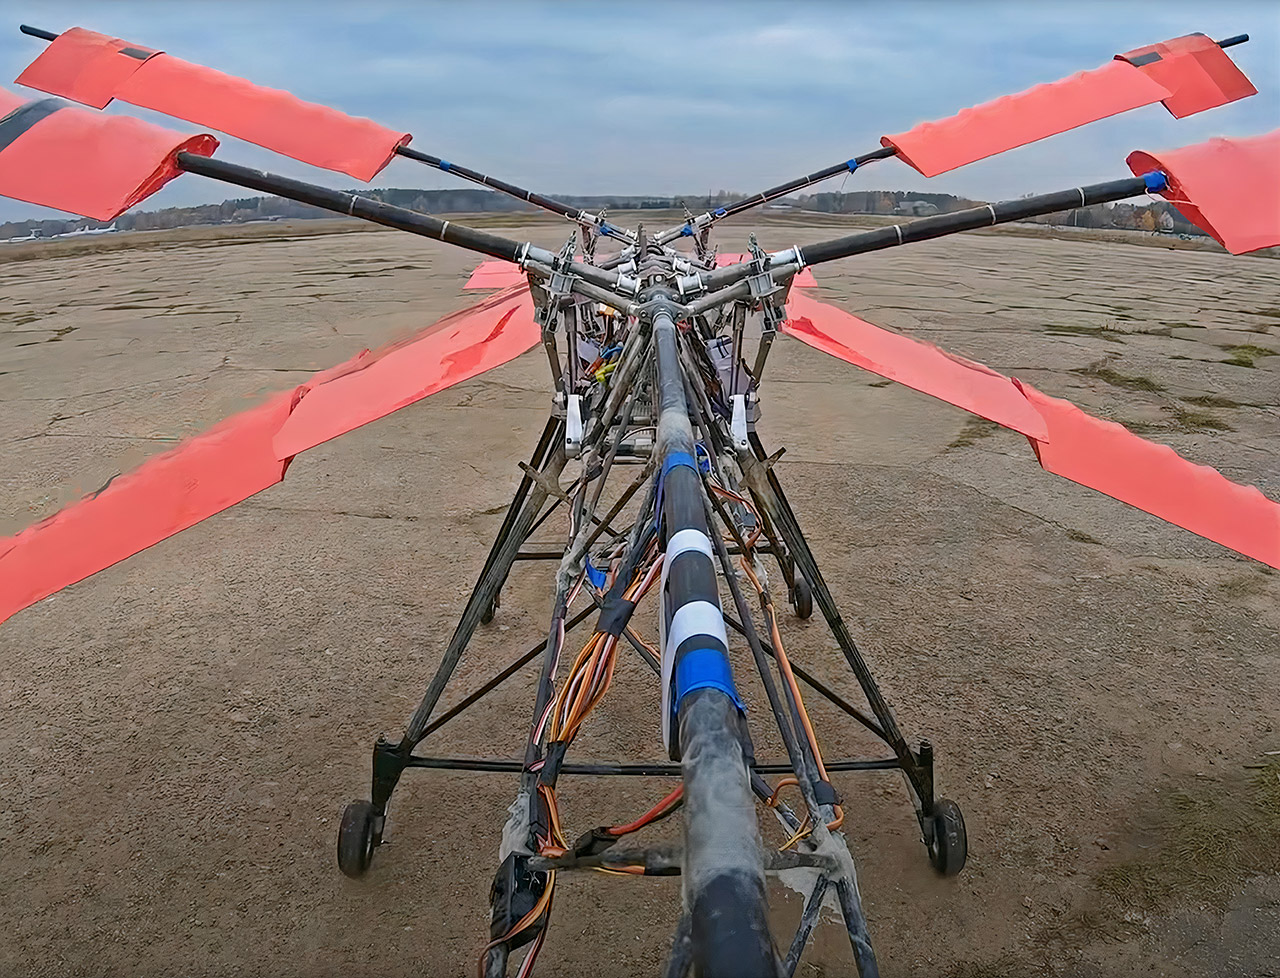 Dragonfly RC Ornithopter